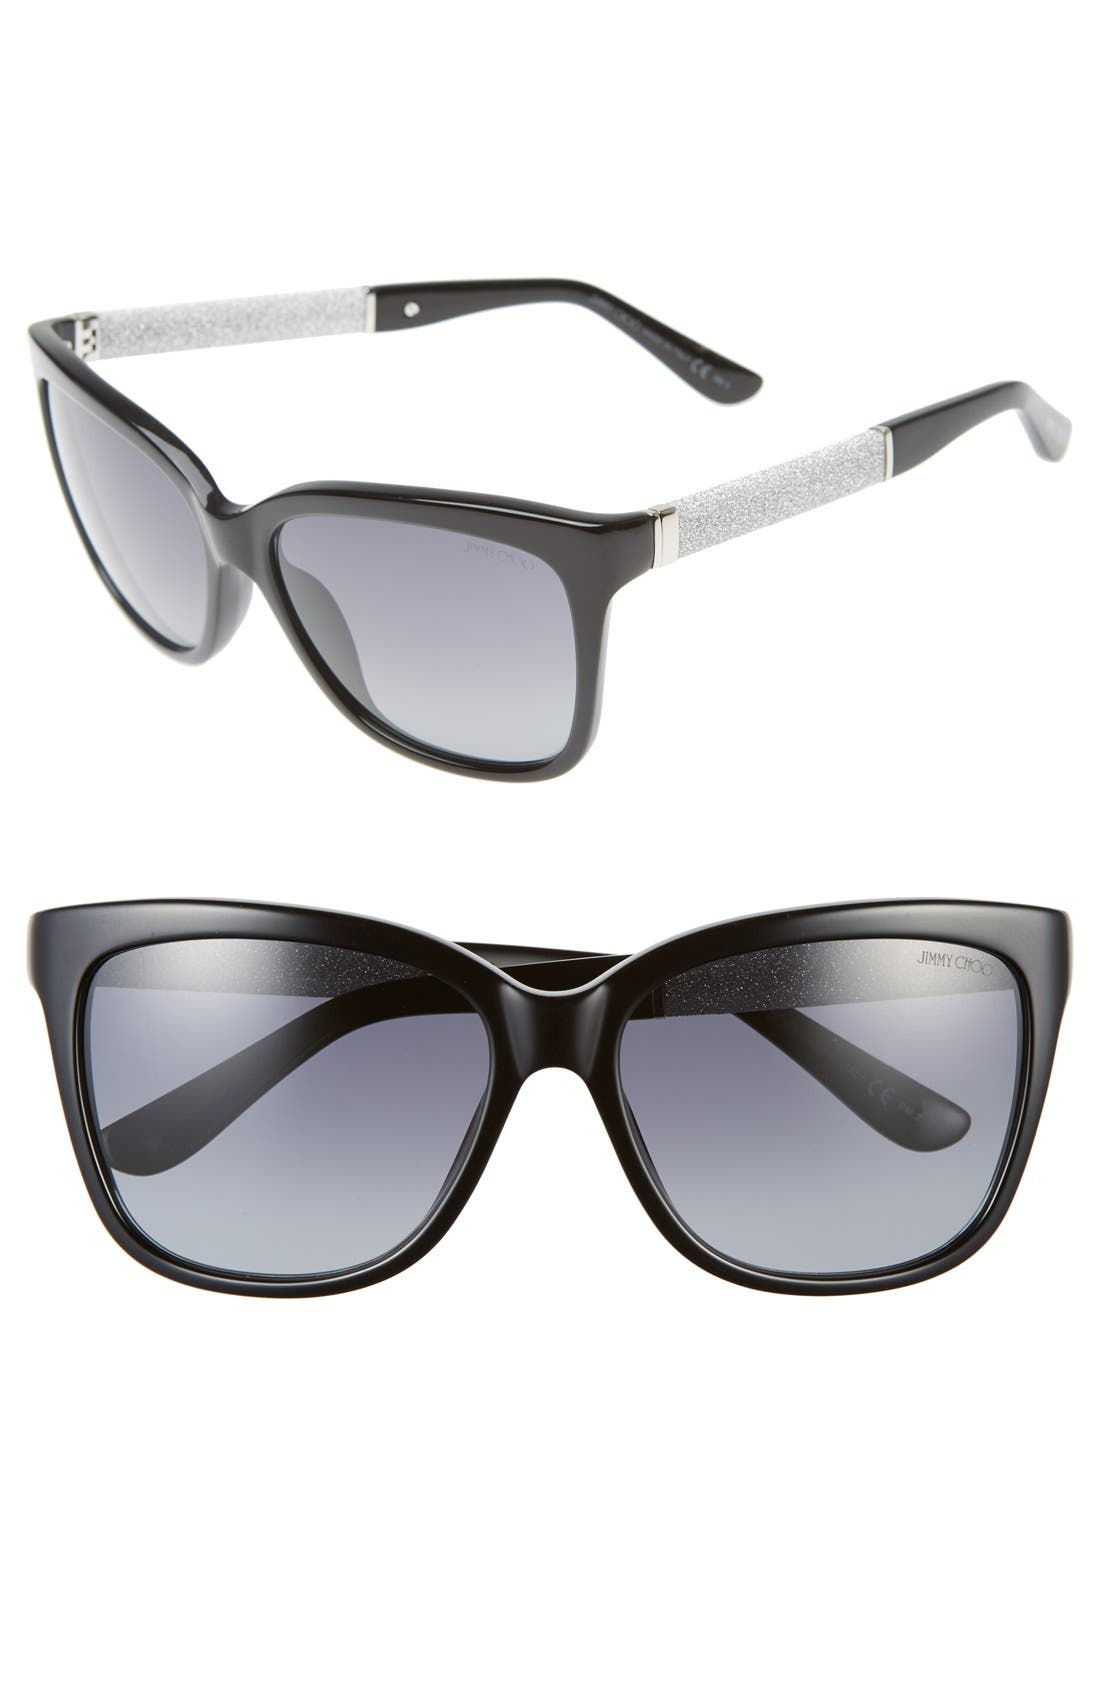 Main Image - Jimmy Choo 'Coras' 56mm Retro Sunglasses